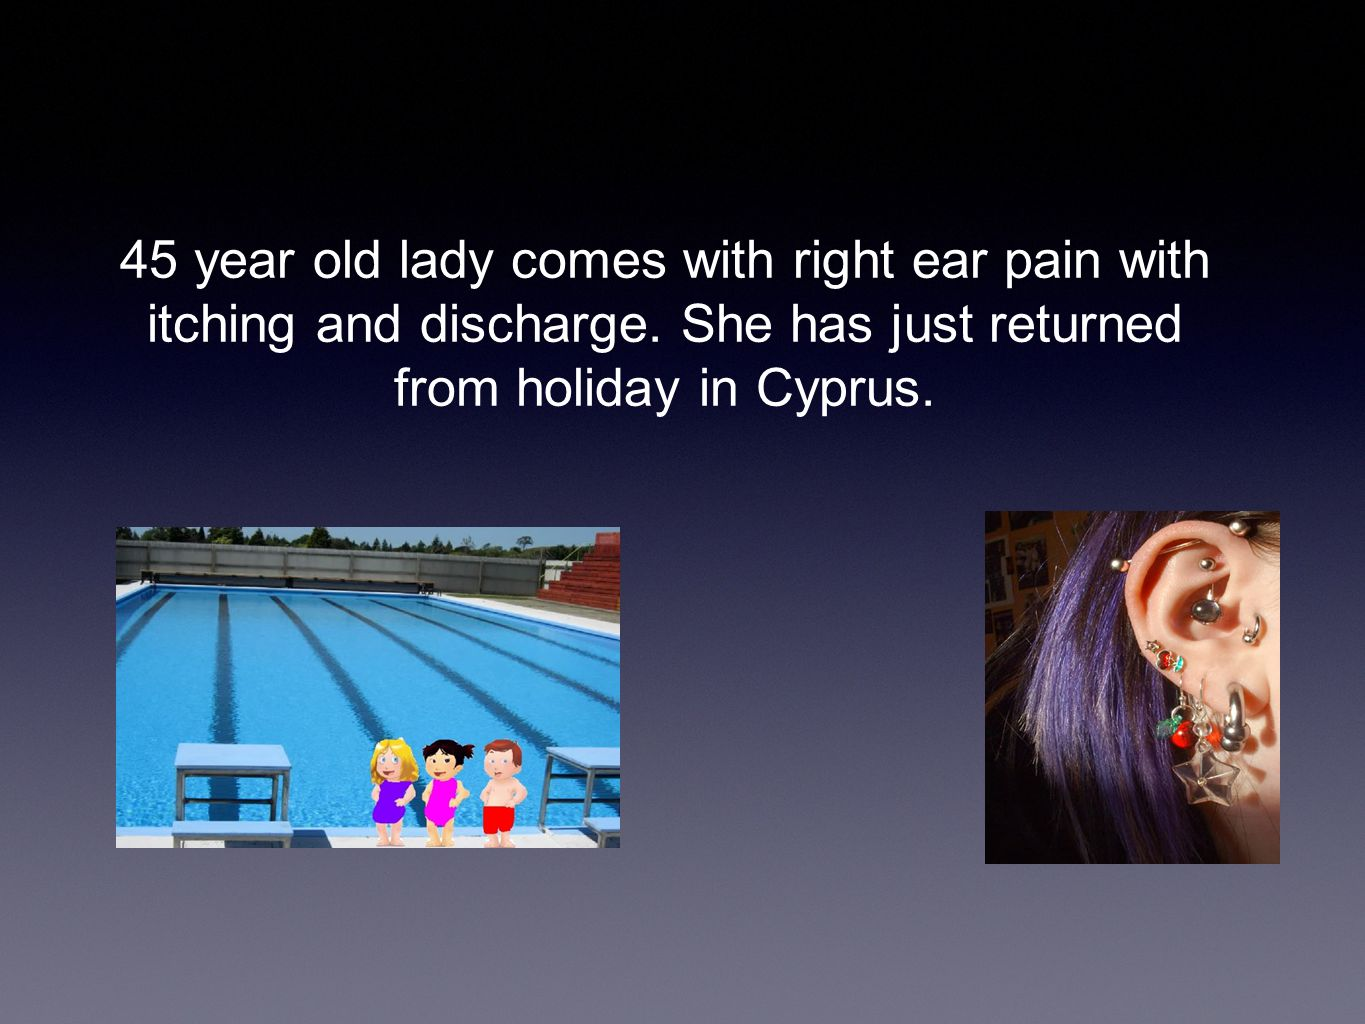 45 year old lady comes with right ear pain with itching and discharge